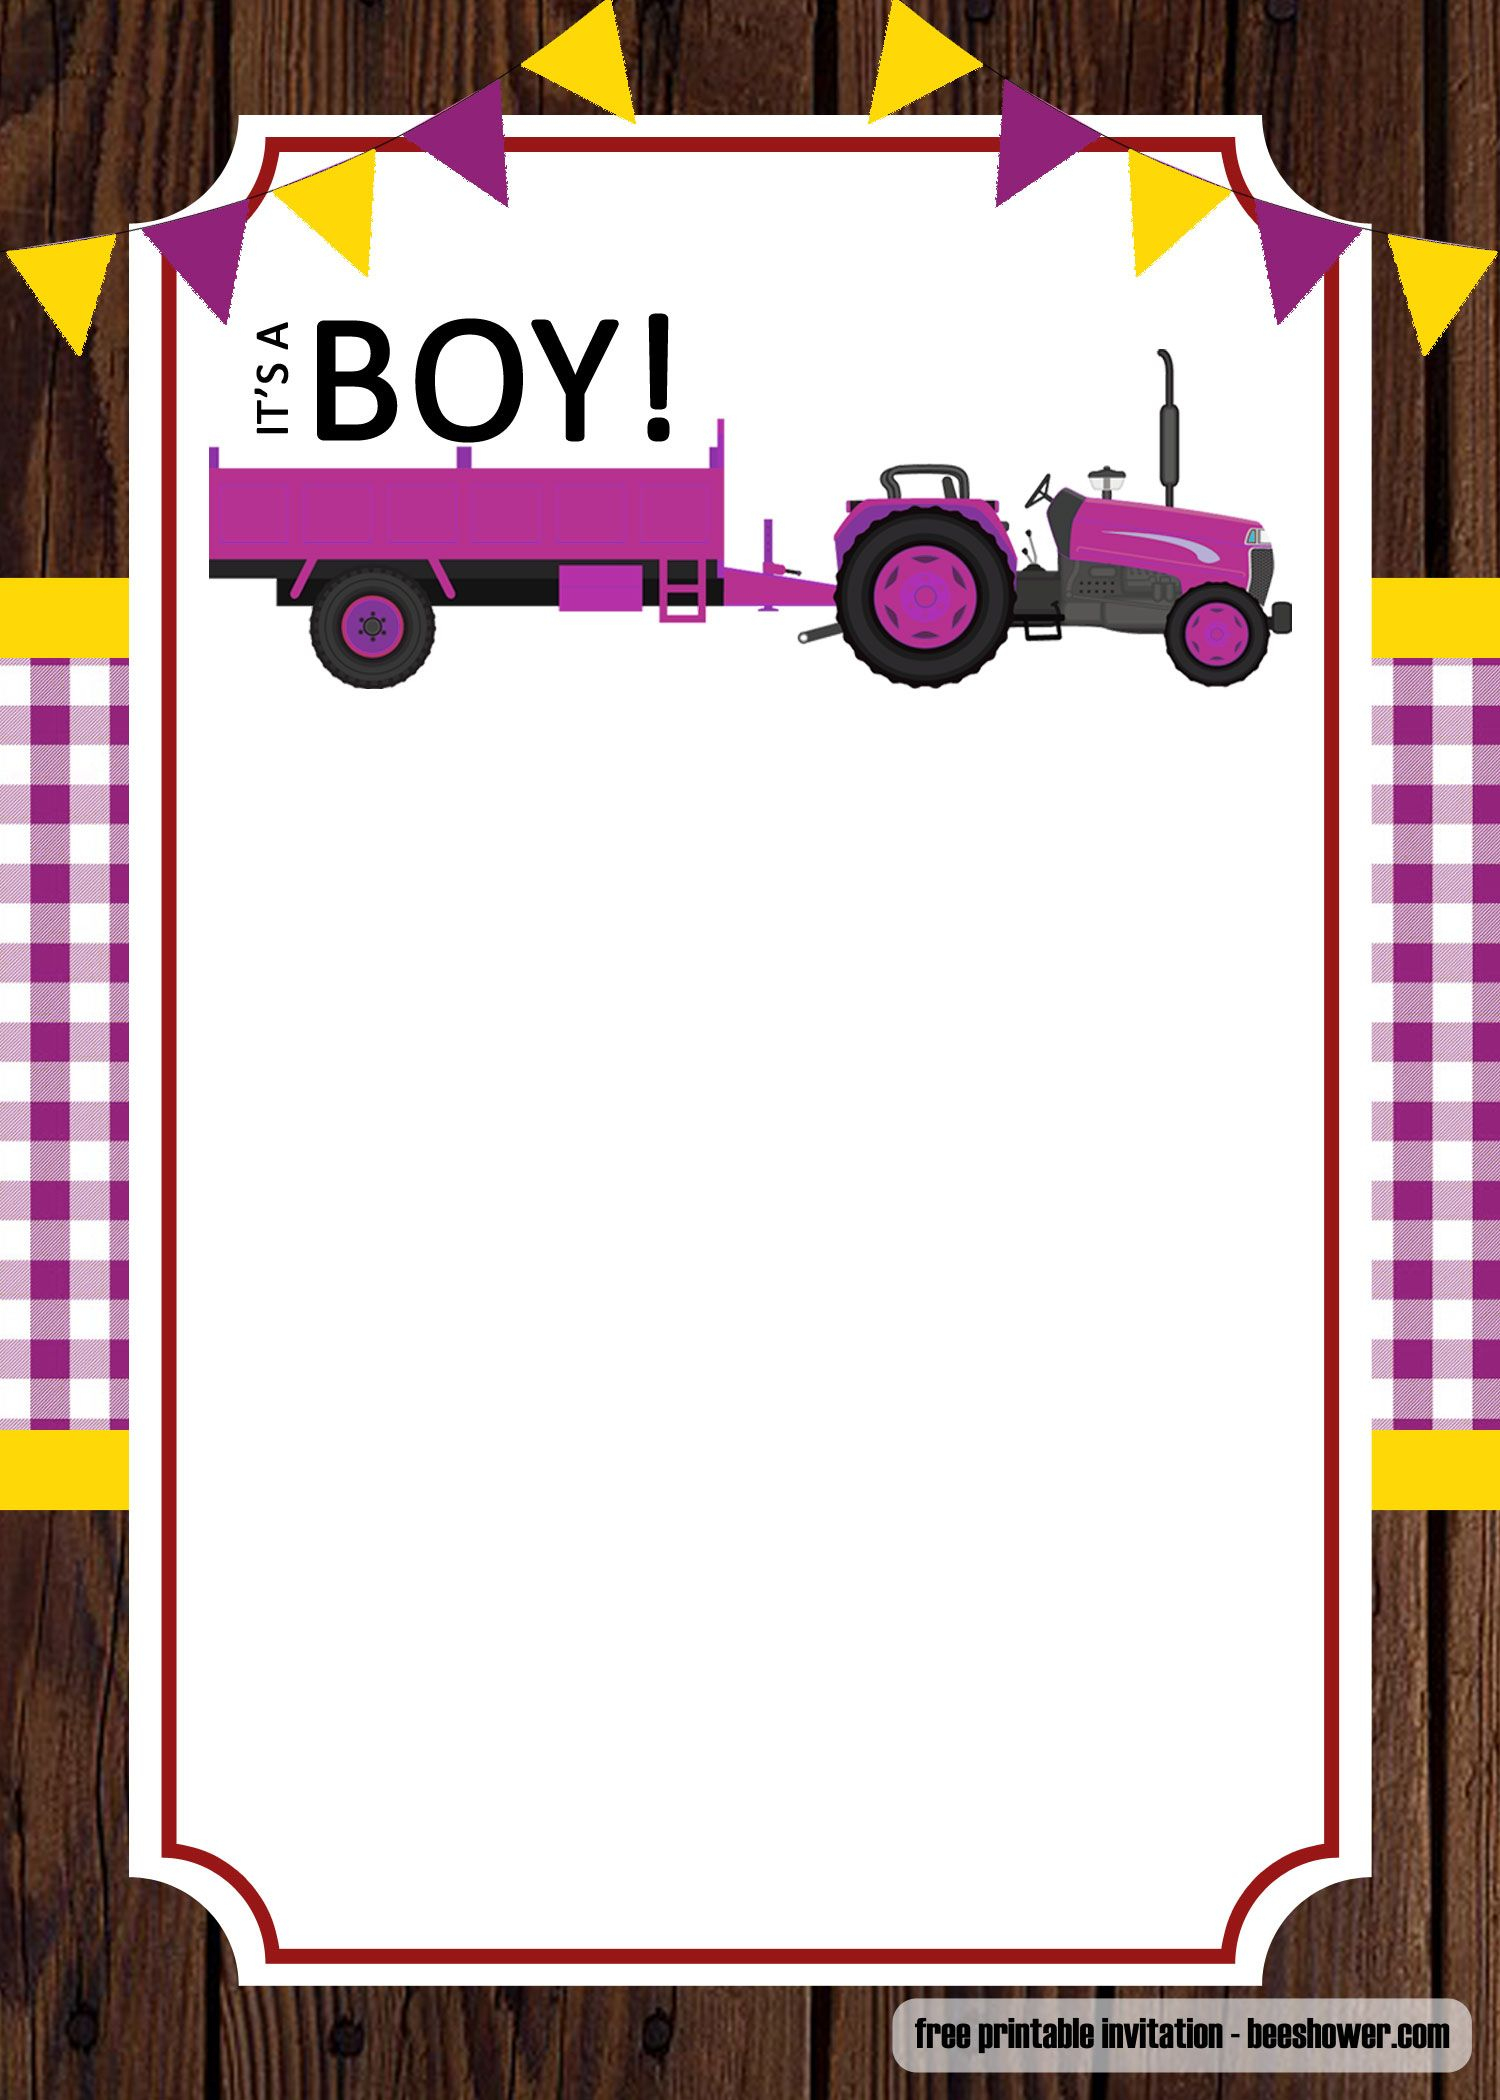 Free Free Printable John Deere Baby Shower Invitations Templates - Free Printable John Deere Baby Shower Invitations